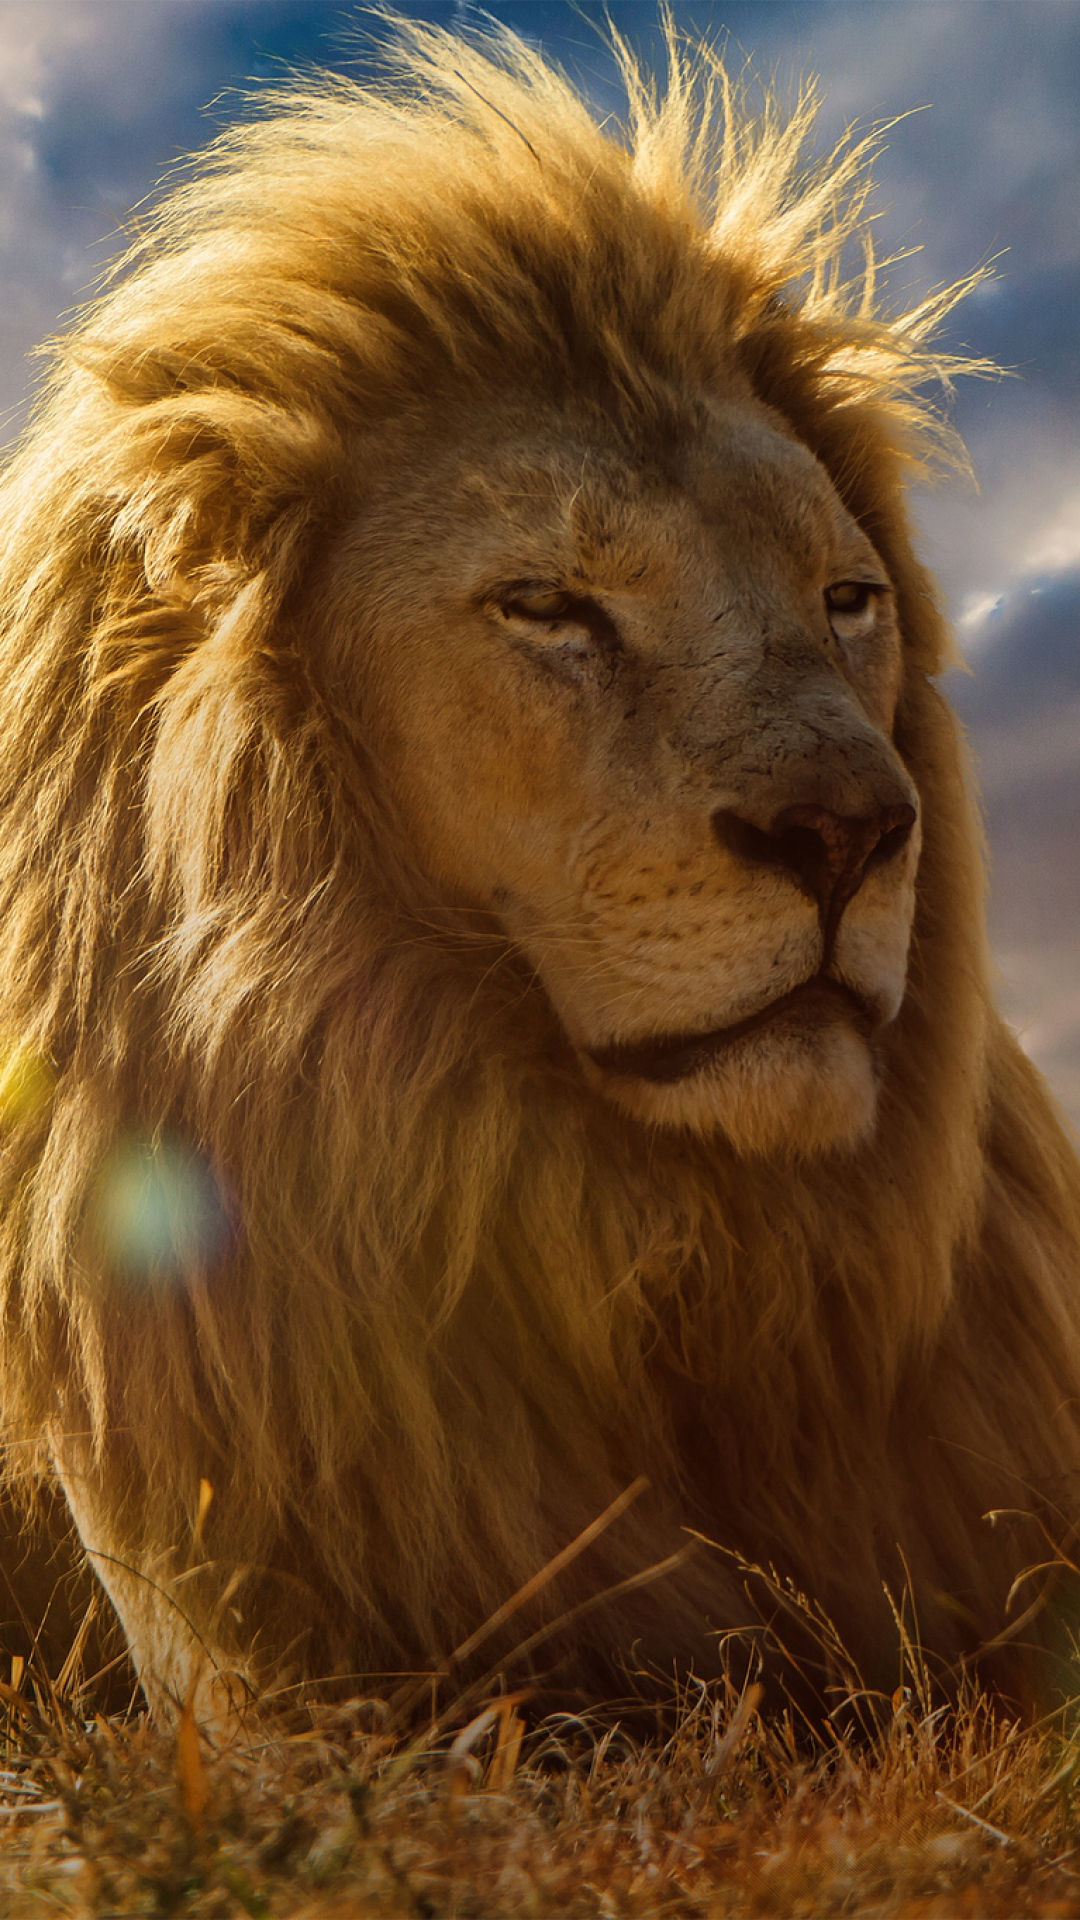 iphone wallpaper lion king 3Wallpapers : notre sélection de fonds décran du 10/10/2017